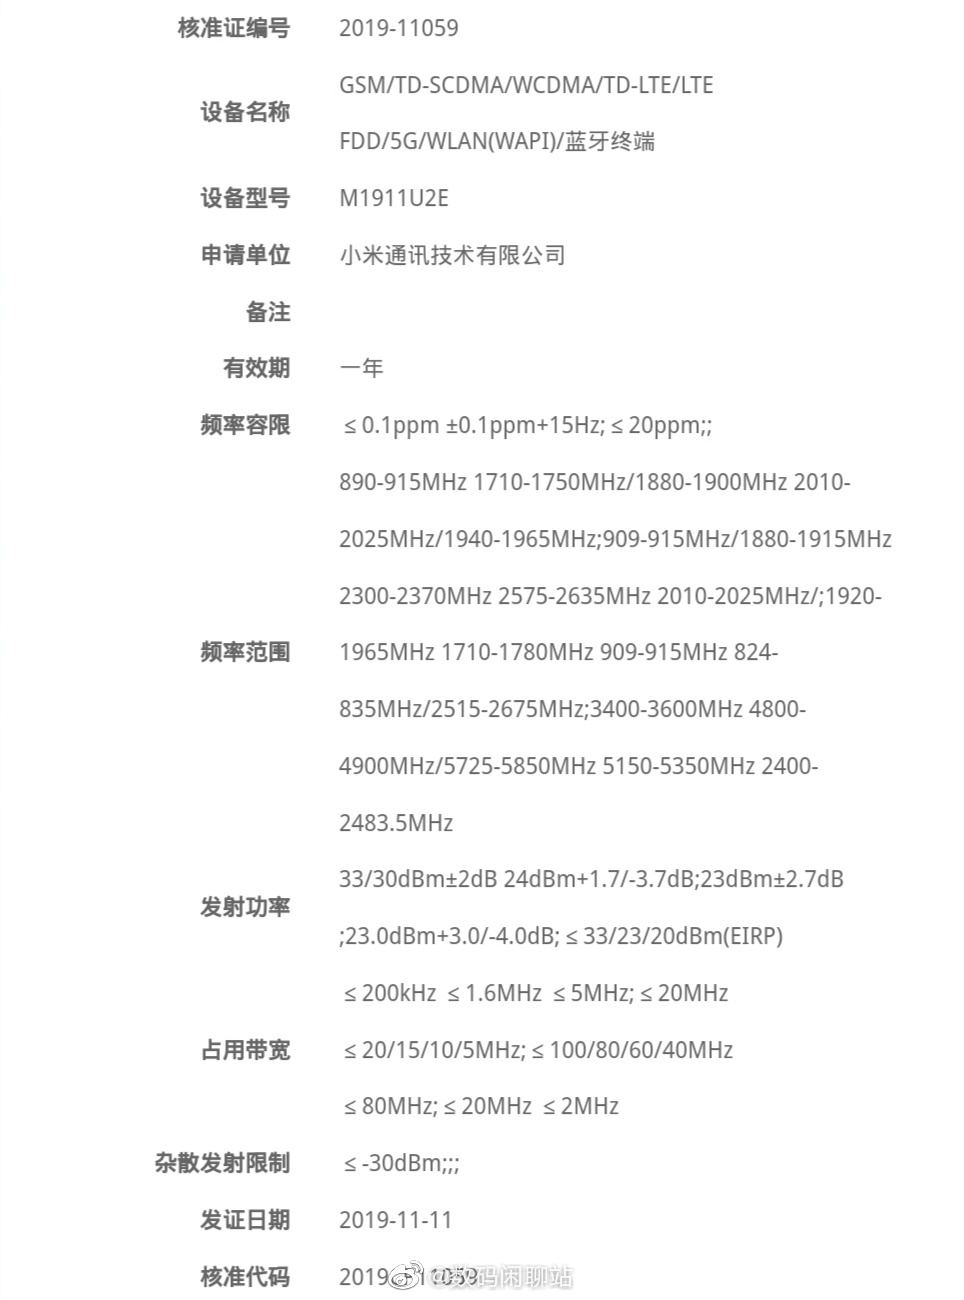 redmi k30 miit certification